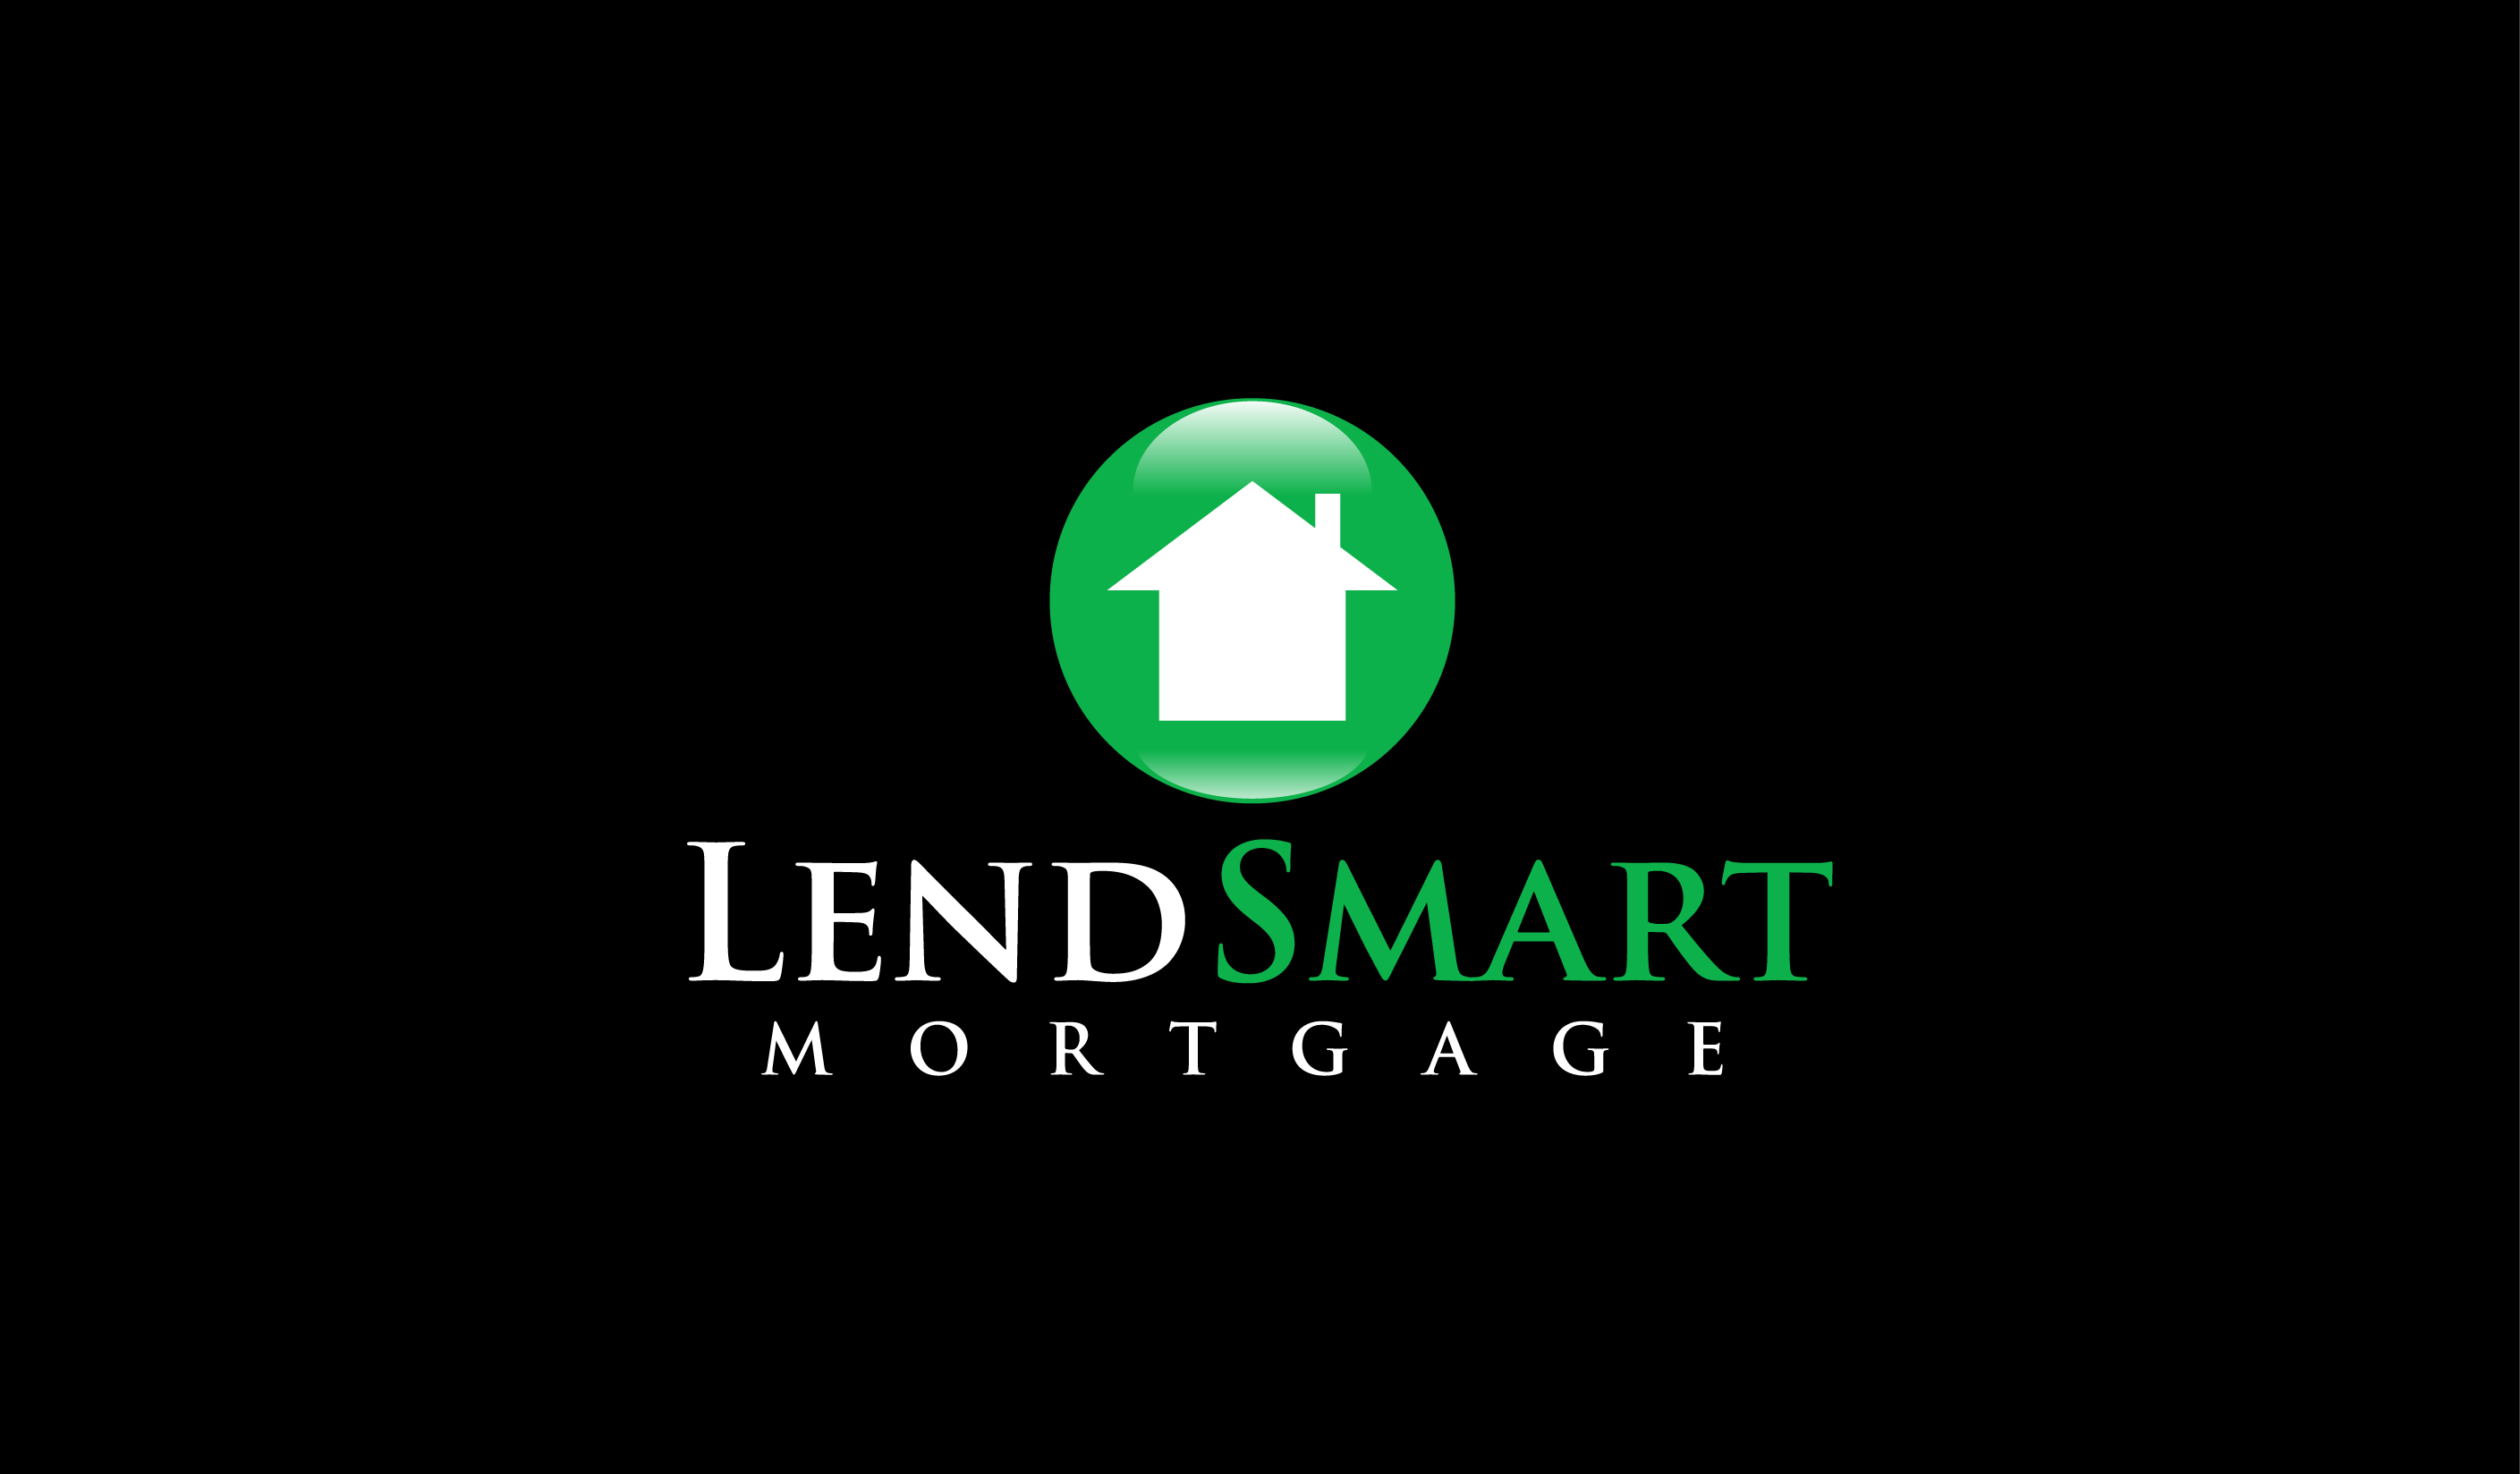 Lend Smart Mortgage logo